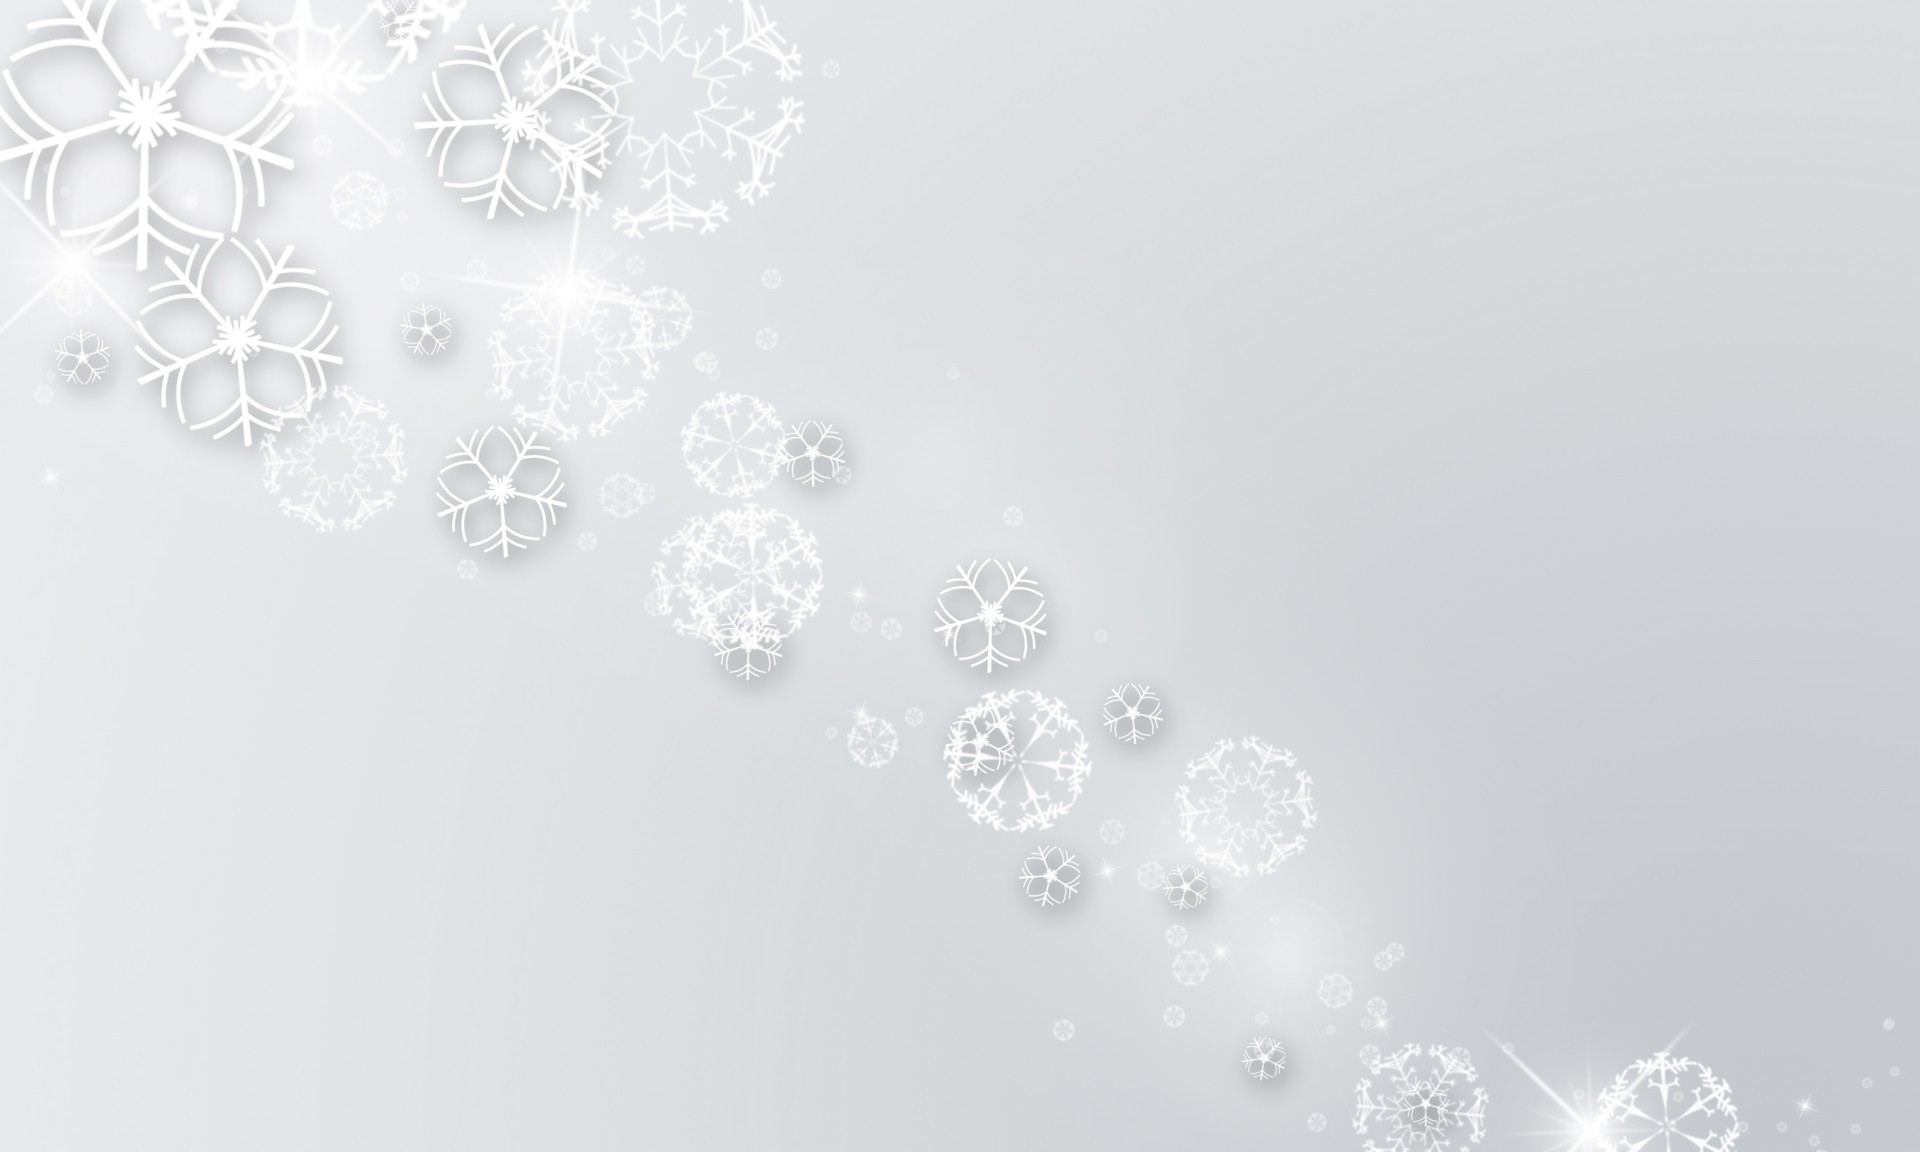 Christmas Love Ipad Air Wallpaper Download: Silver Wallpaper ·① Download Free Stunning Backgrounds For